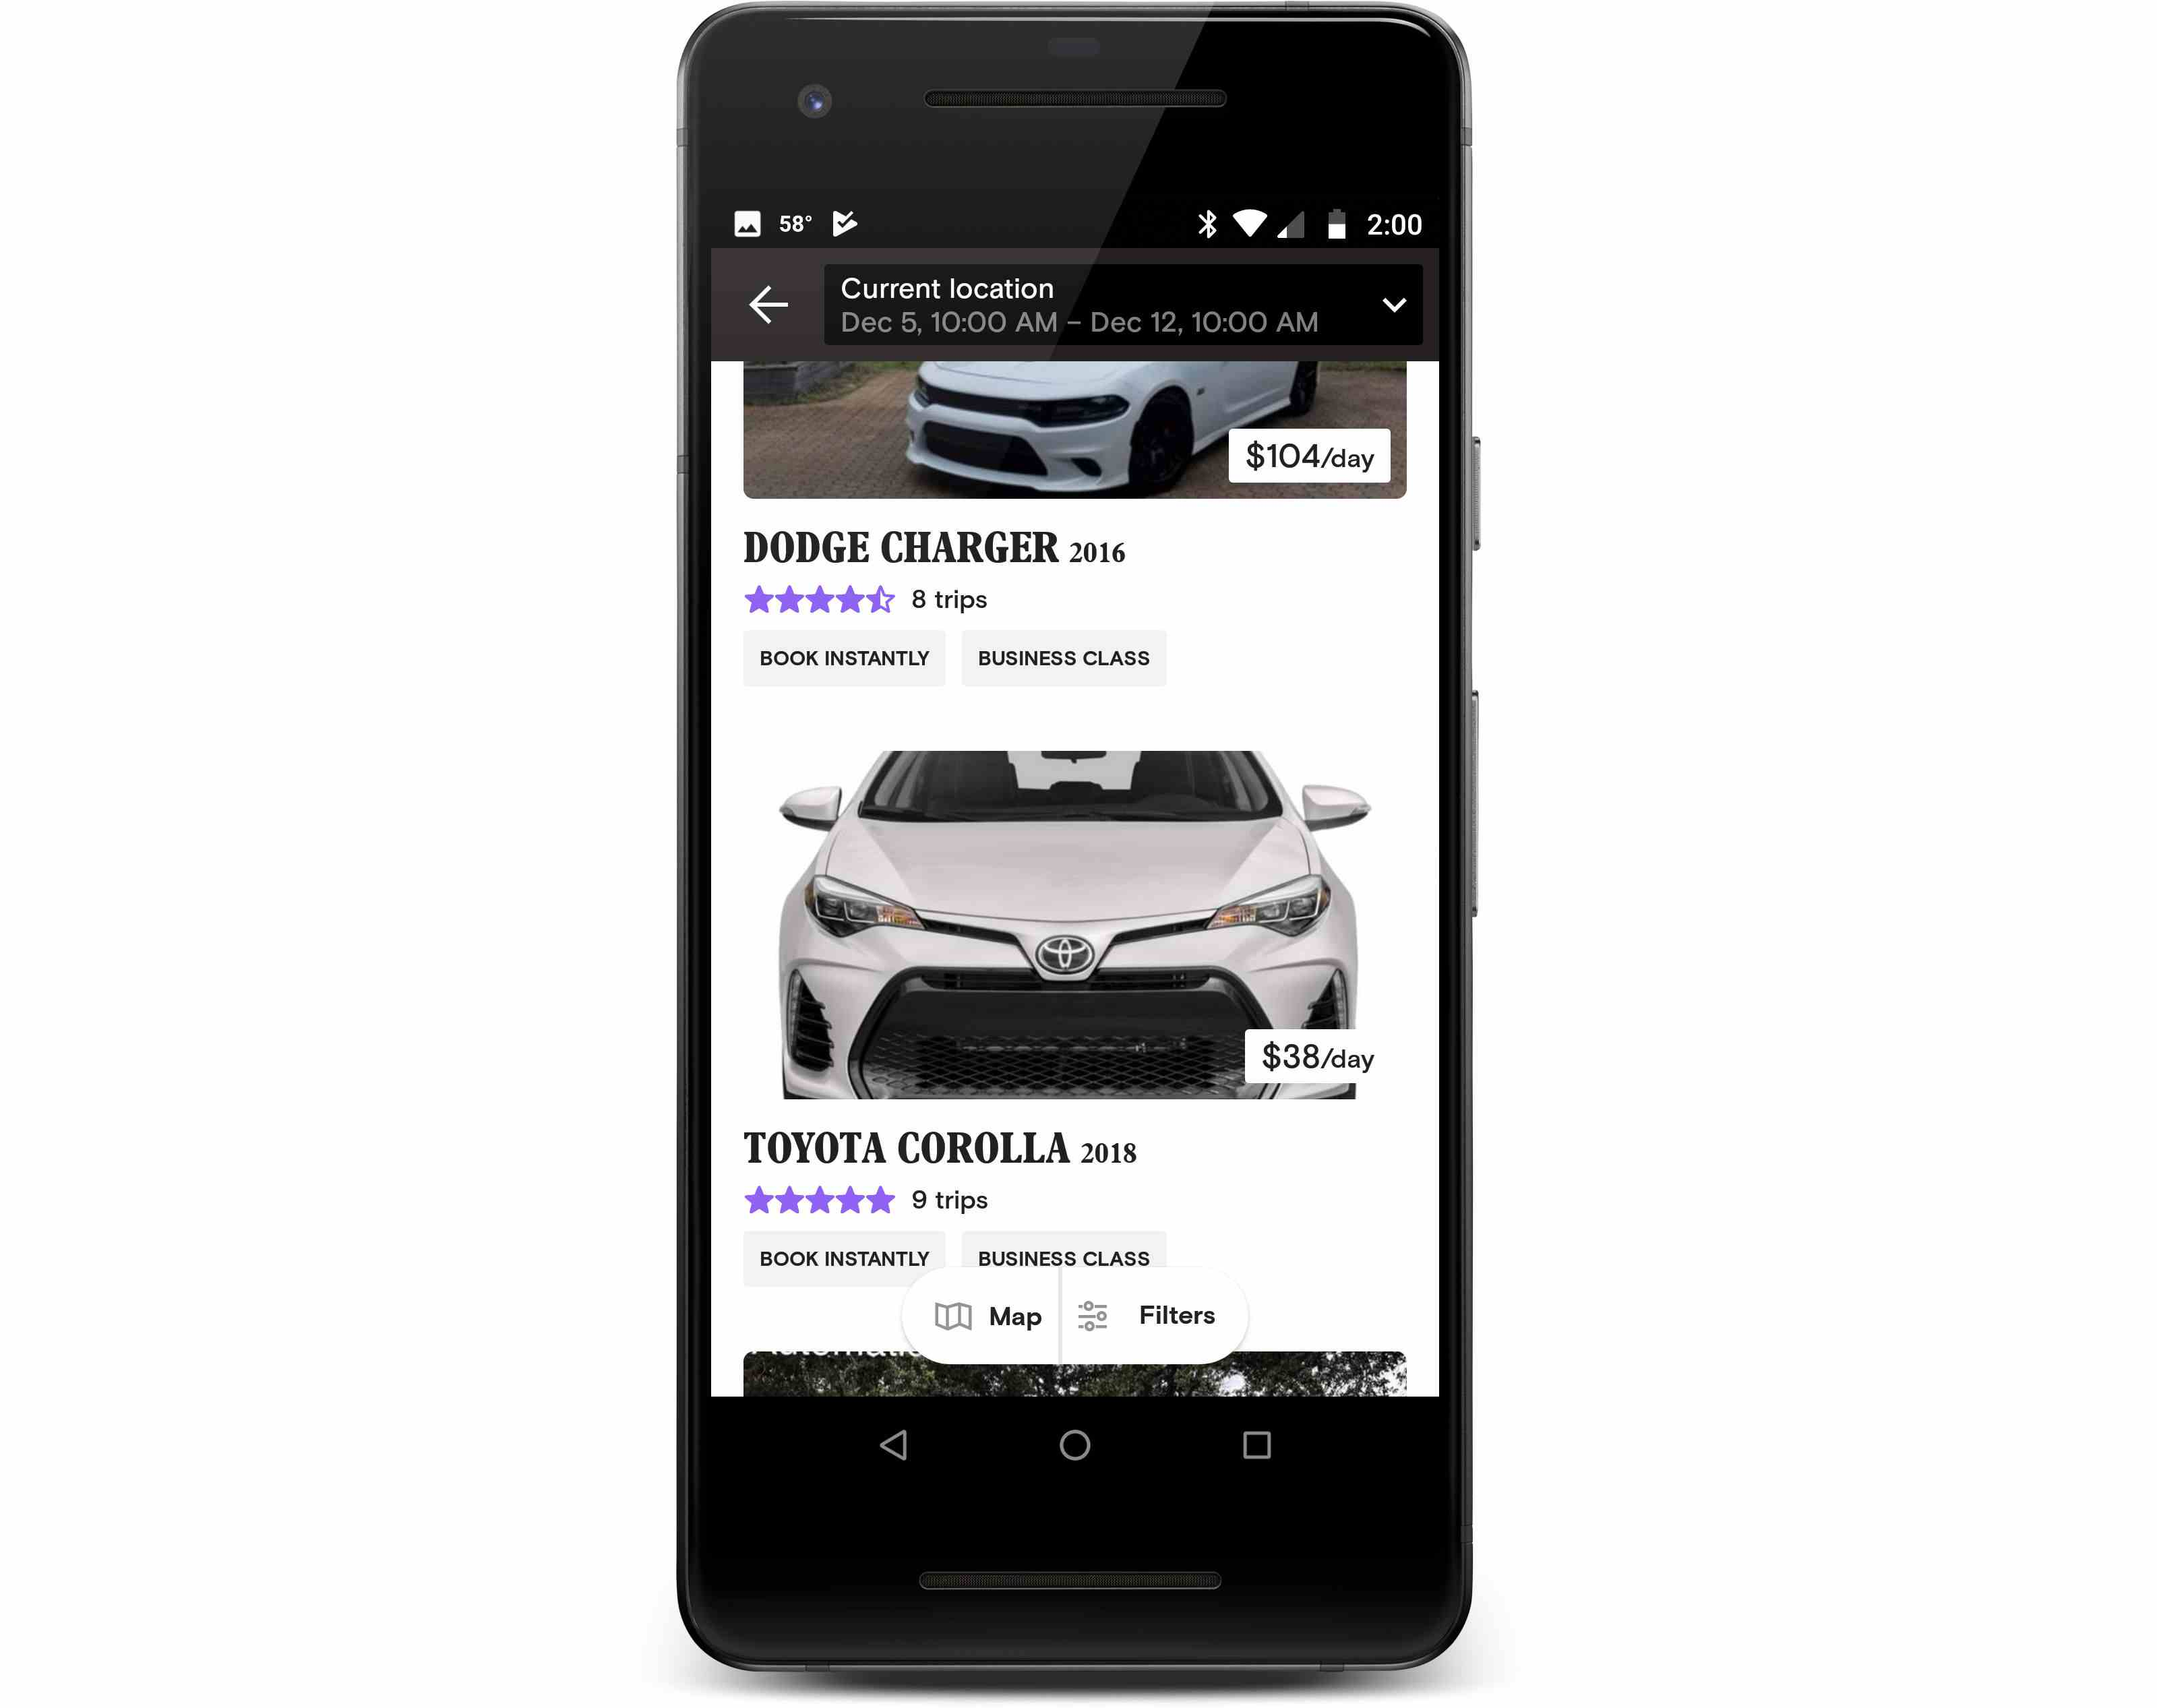 The Turo app displayed on a phone